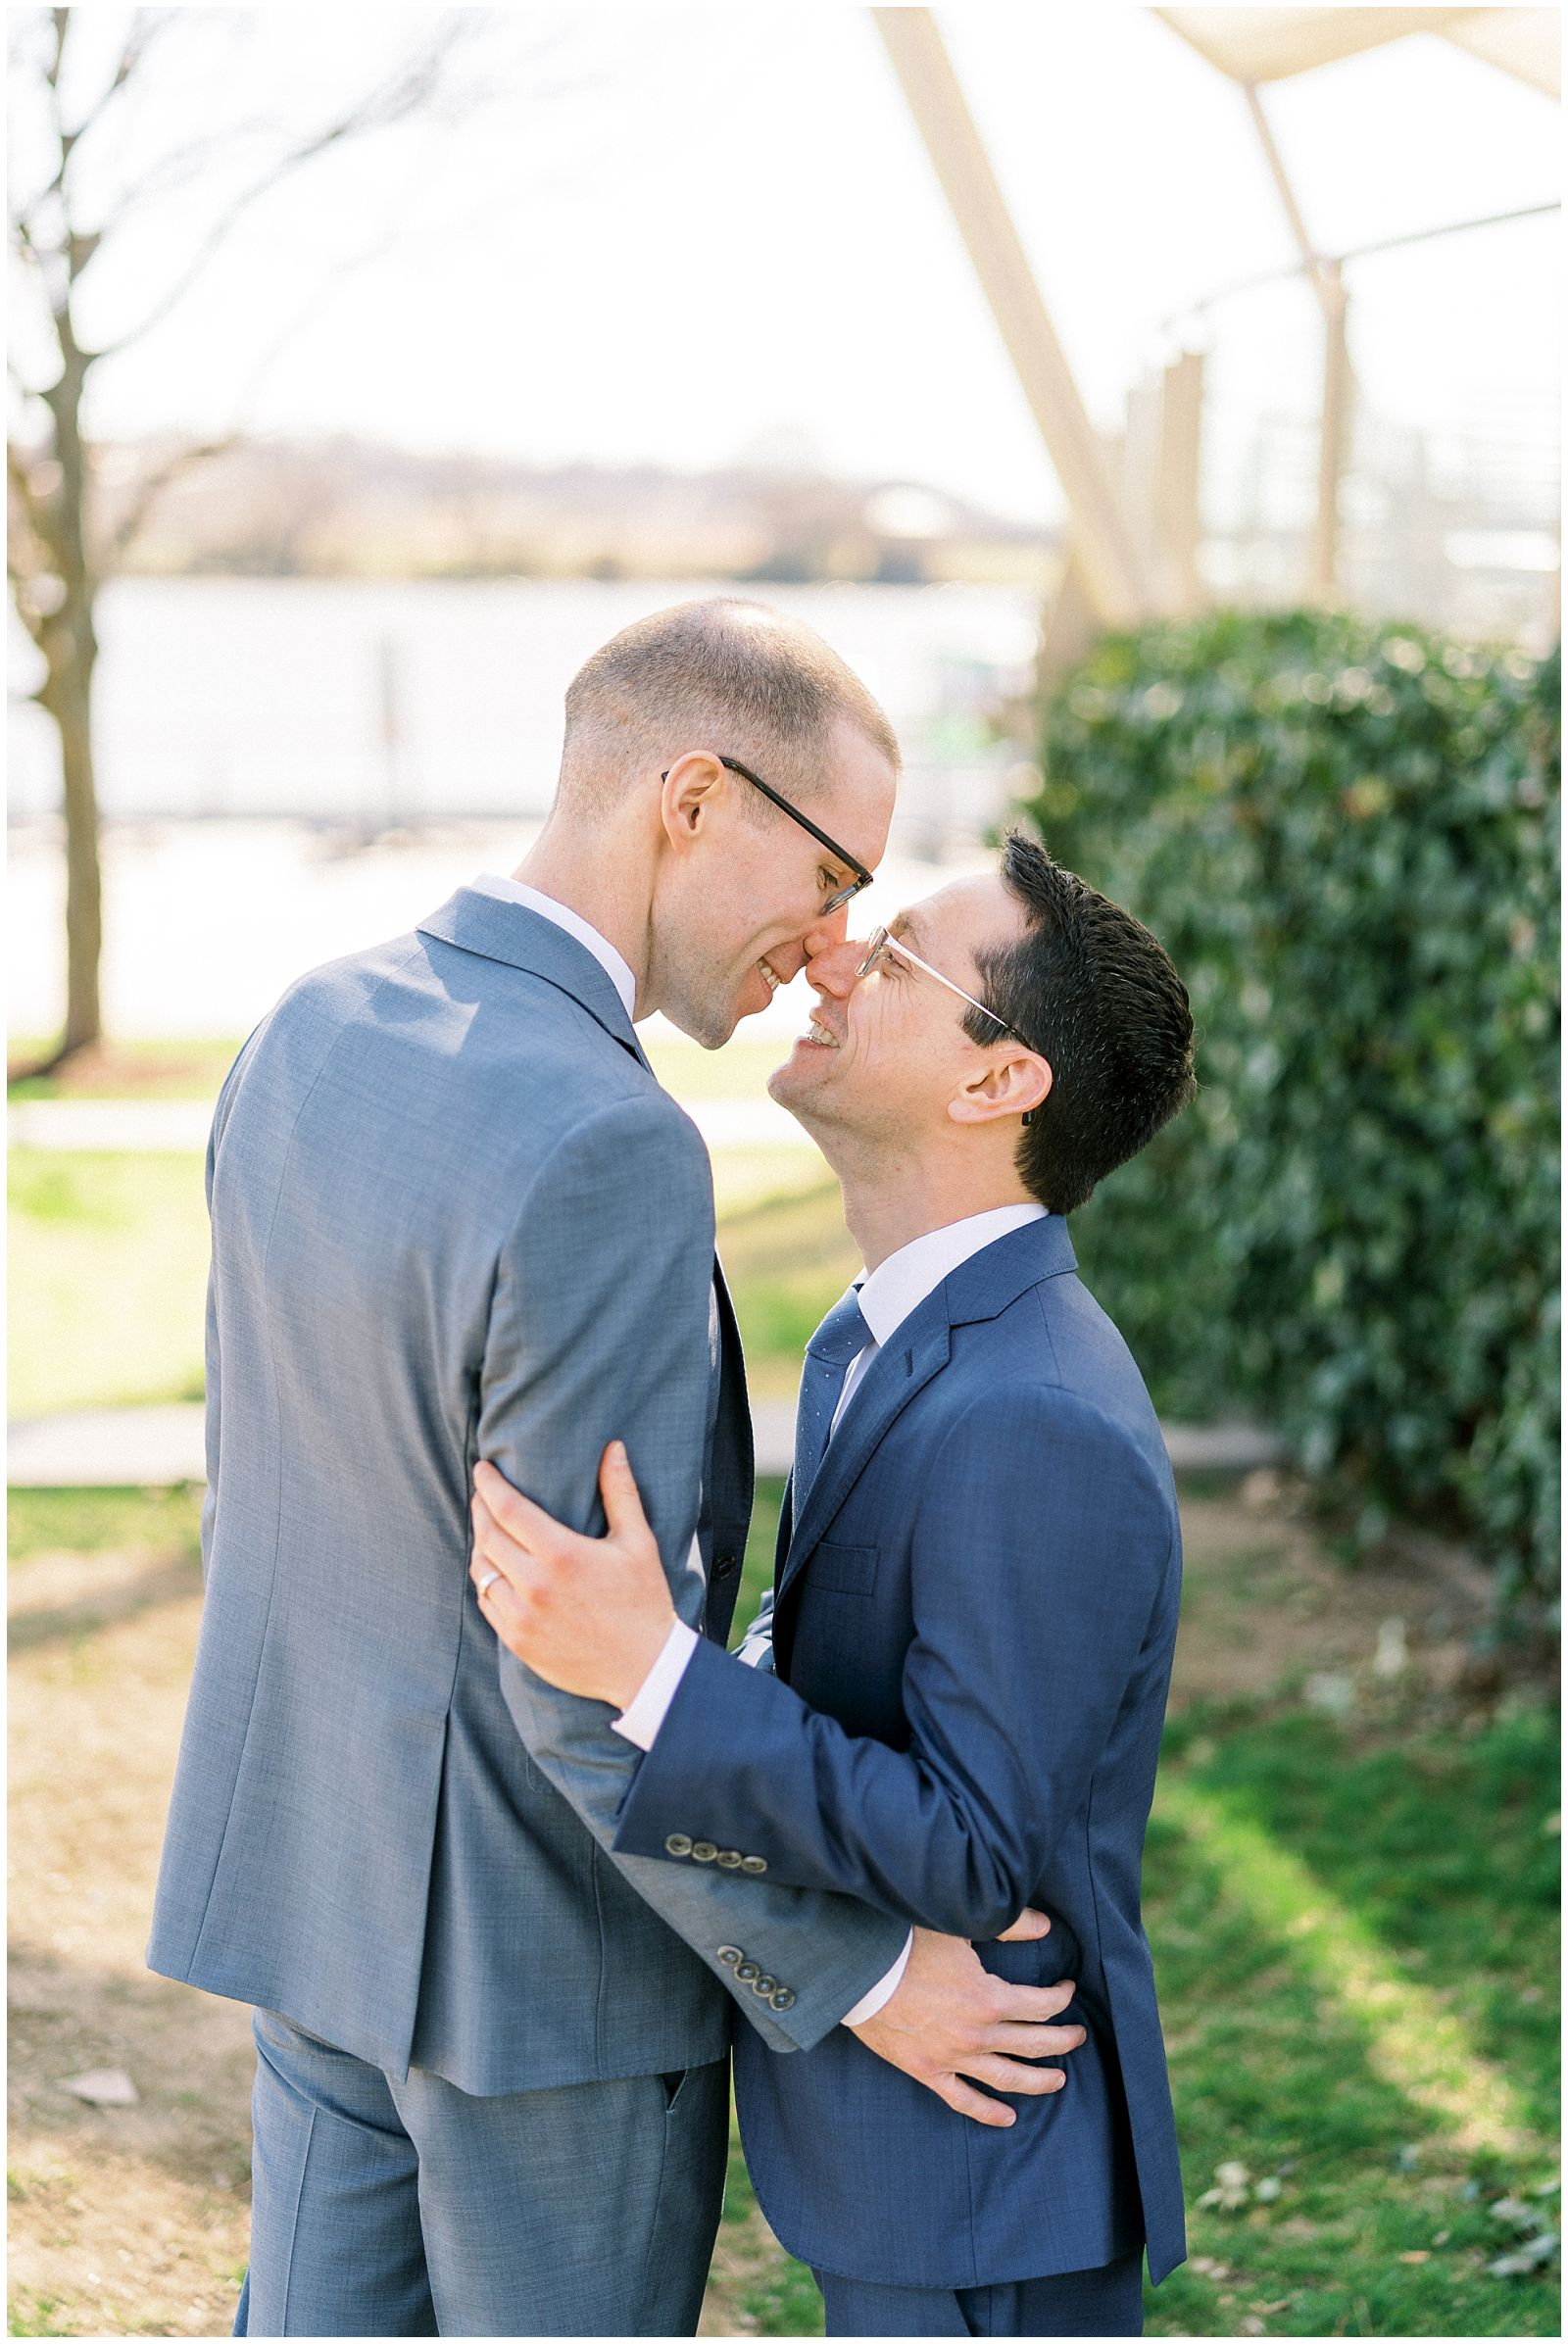 LGBTQ Wedding at District Winery in Washington DC